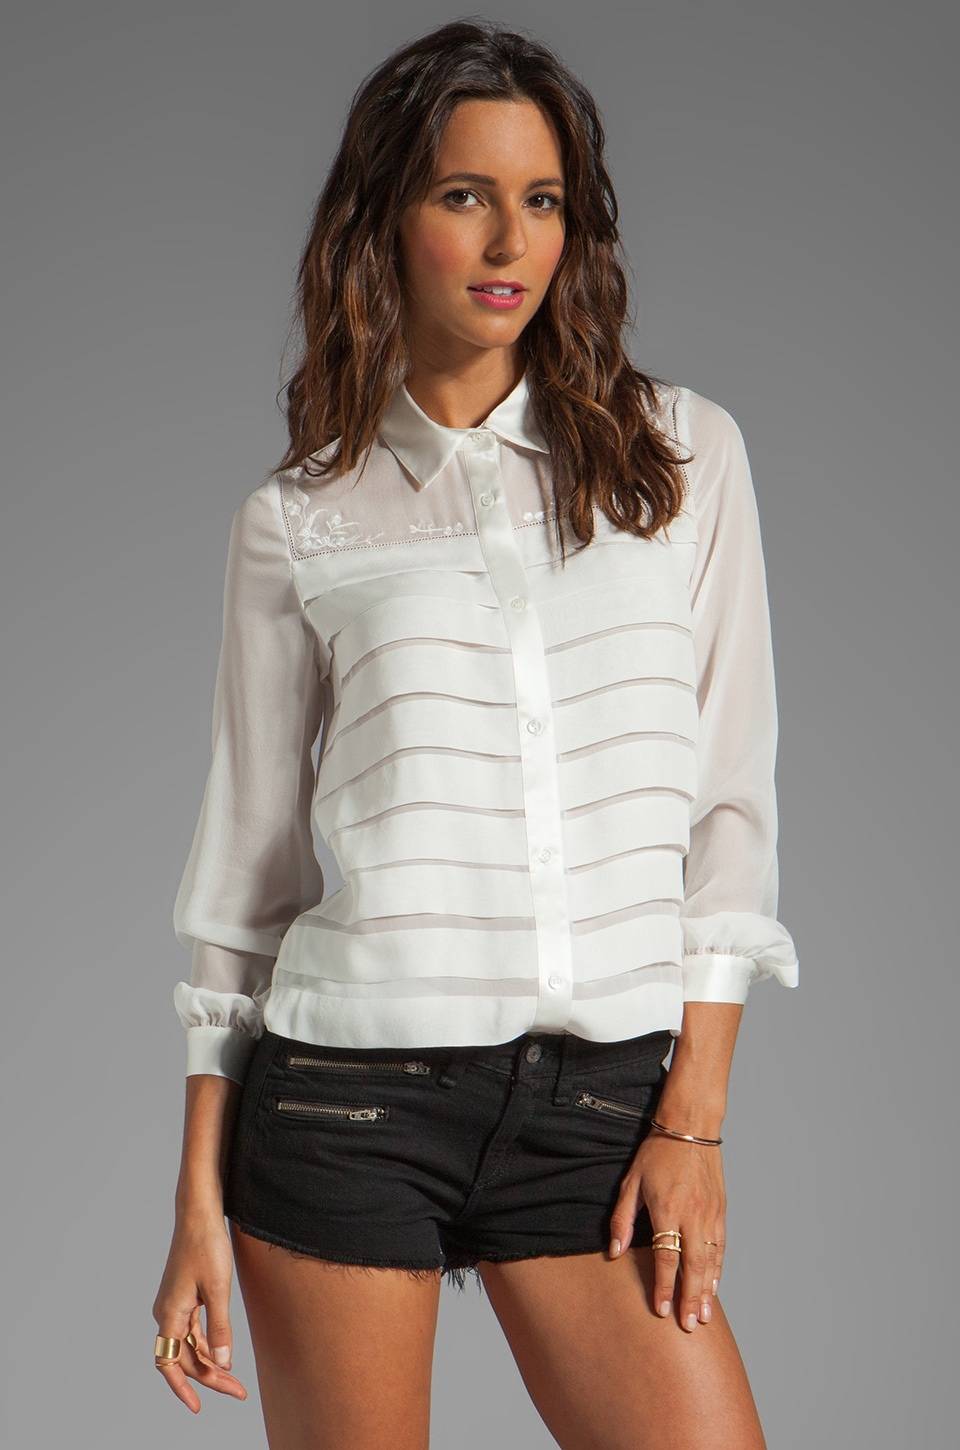 Haute Hippie Blouse with Embroidery and Pleats in Swan